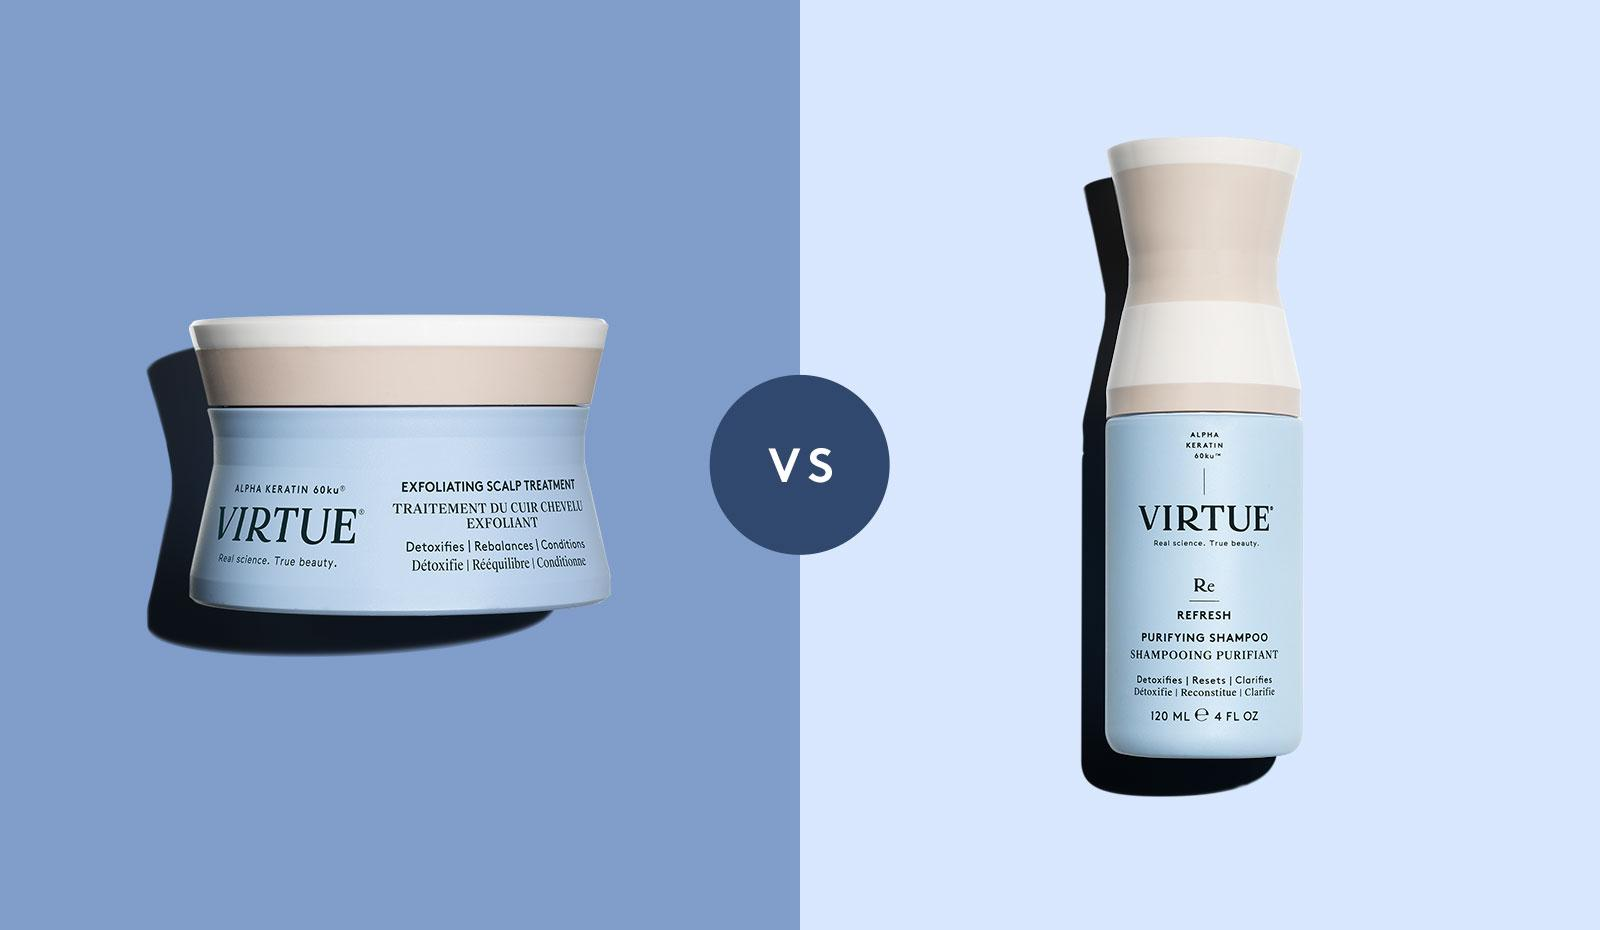 What's the Difference: Exfoliating Scalp Treatment vs. Purifying Shampoo